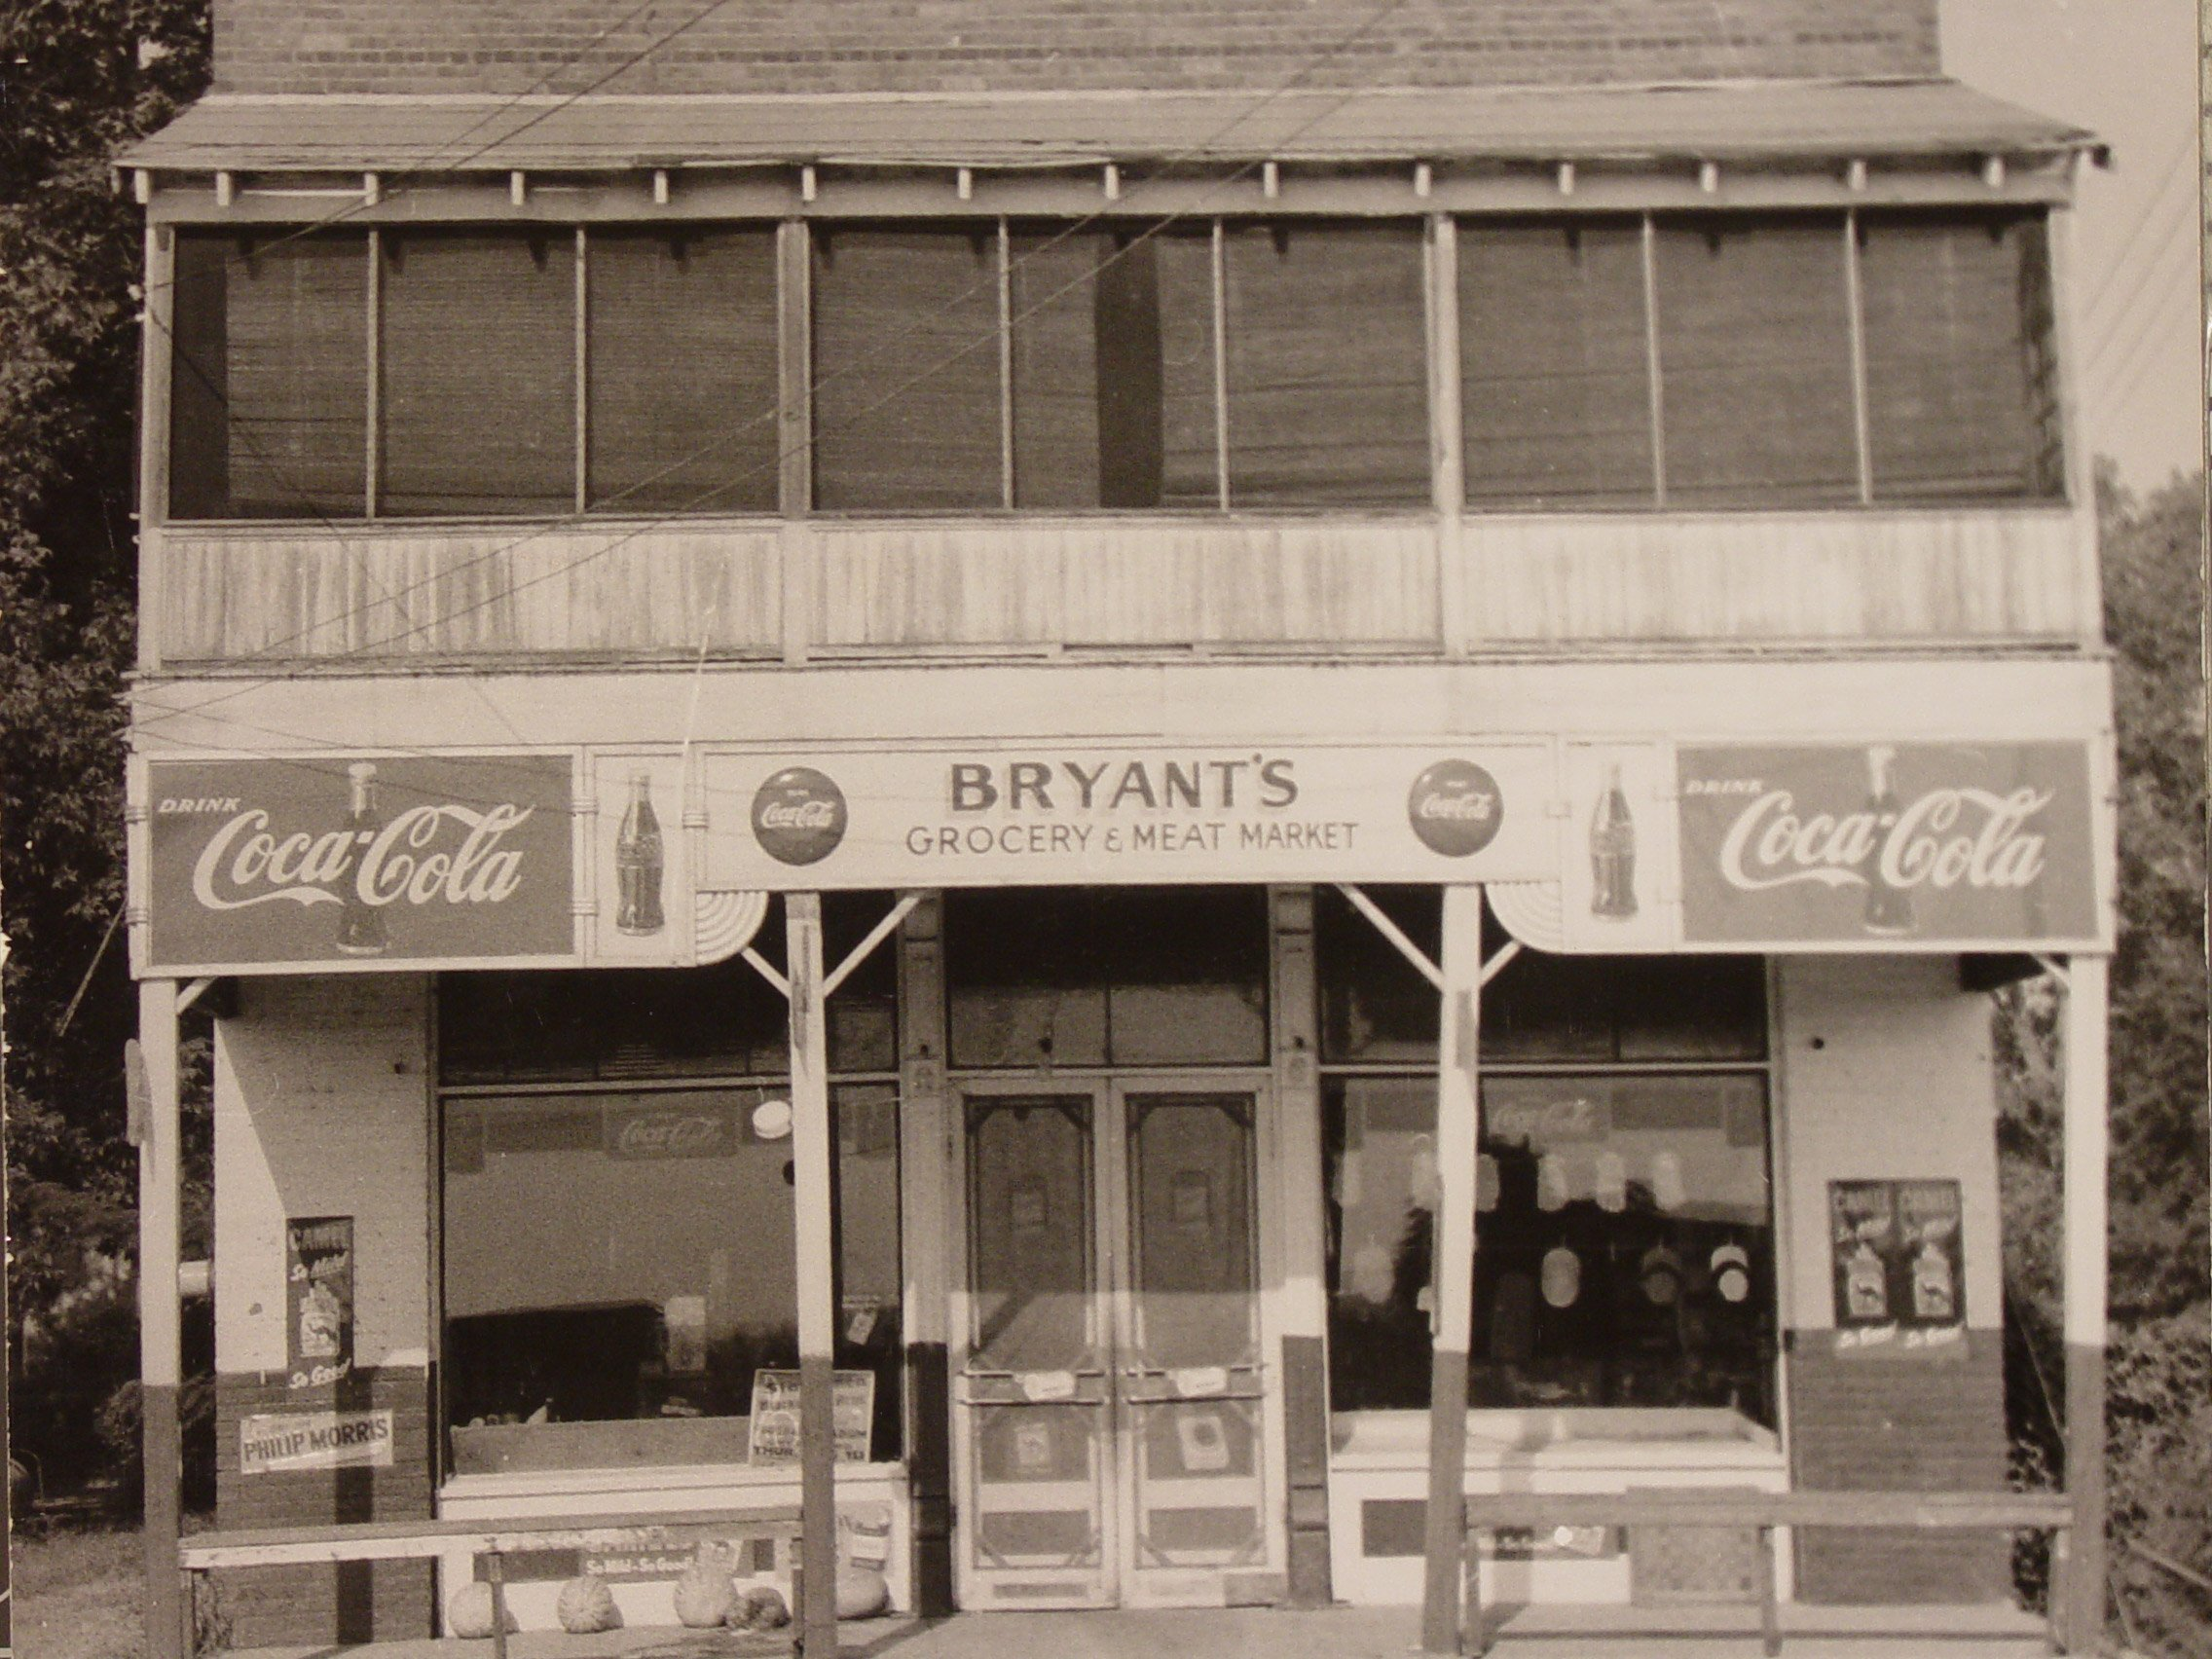 Bryant's Grocery